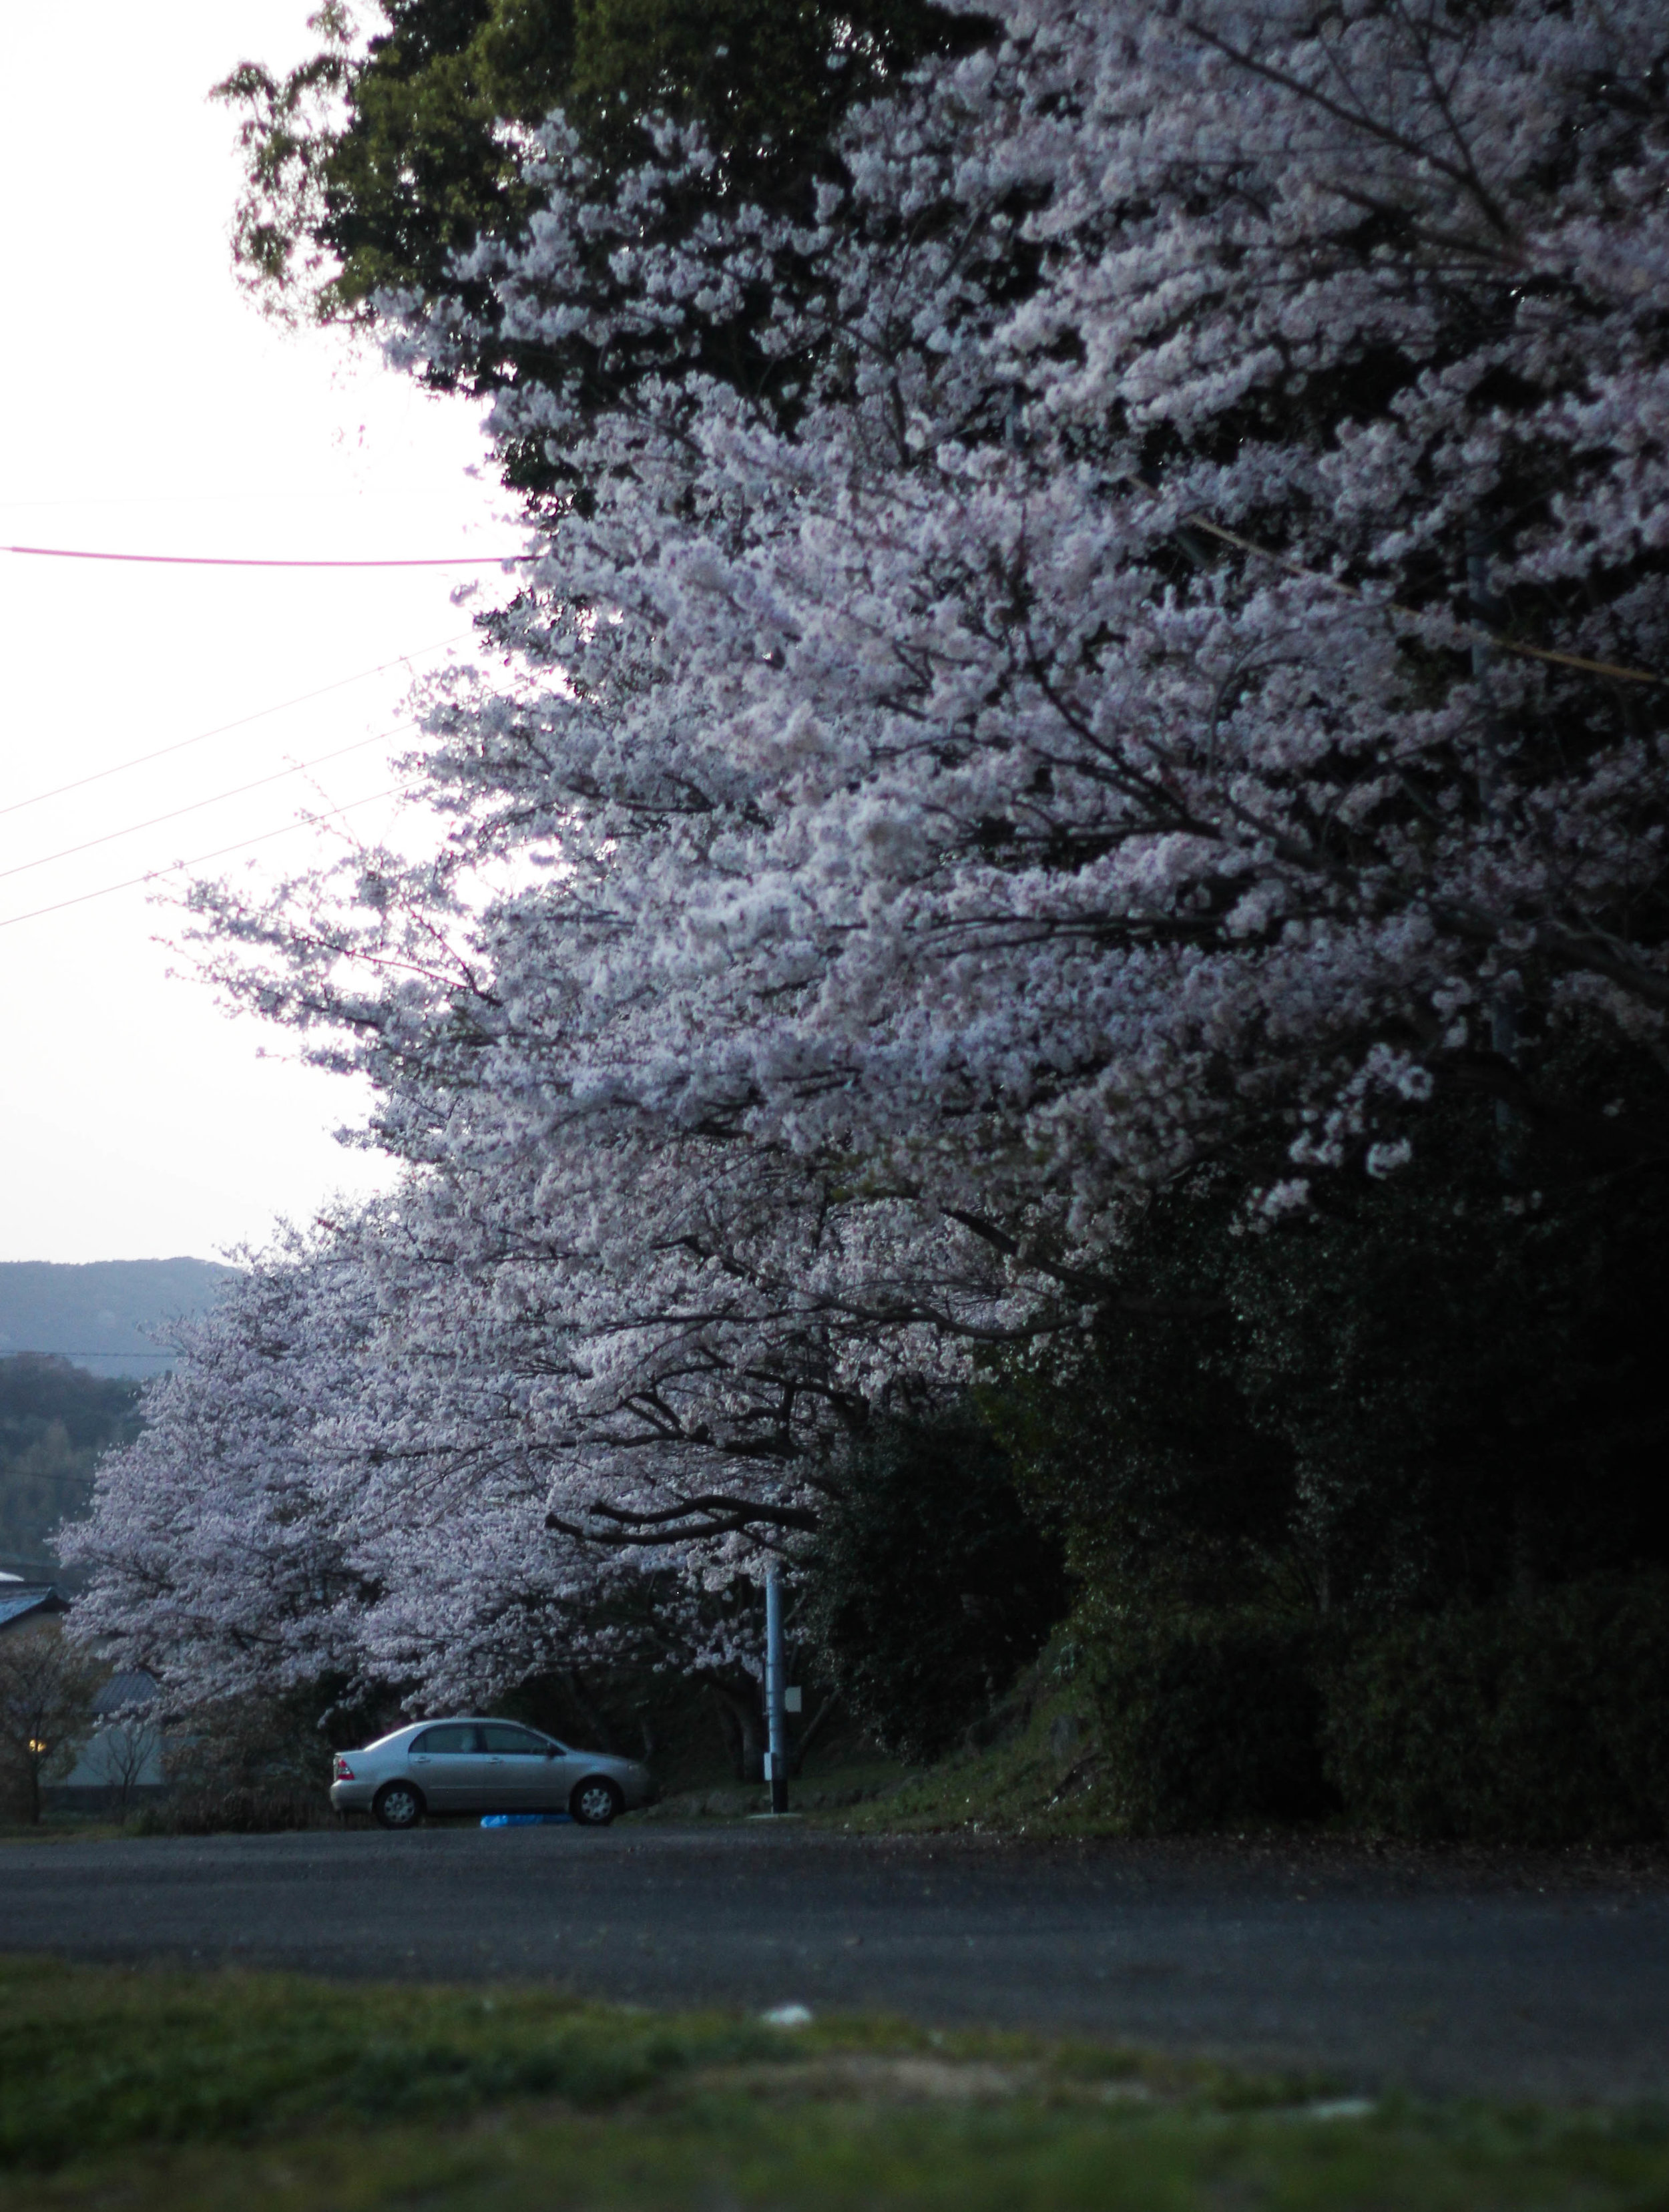 Cherry blossoms at dusk. There is a night equivalent to a hanami called 'yozakura' (lit night + sakura) and big cities have lit up areas to see the night sakura.